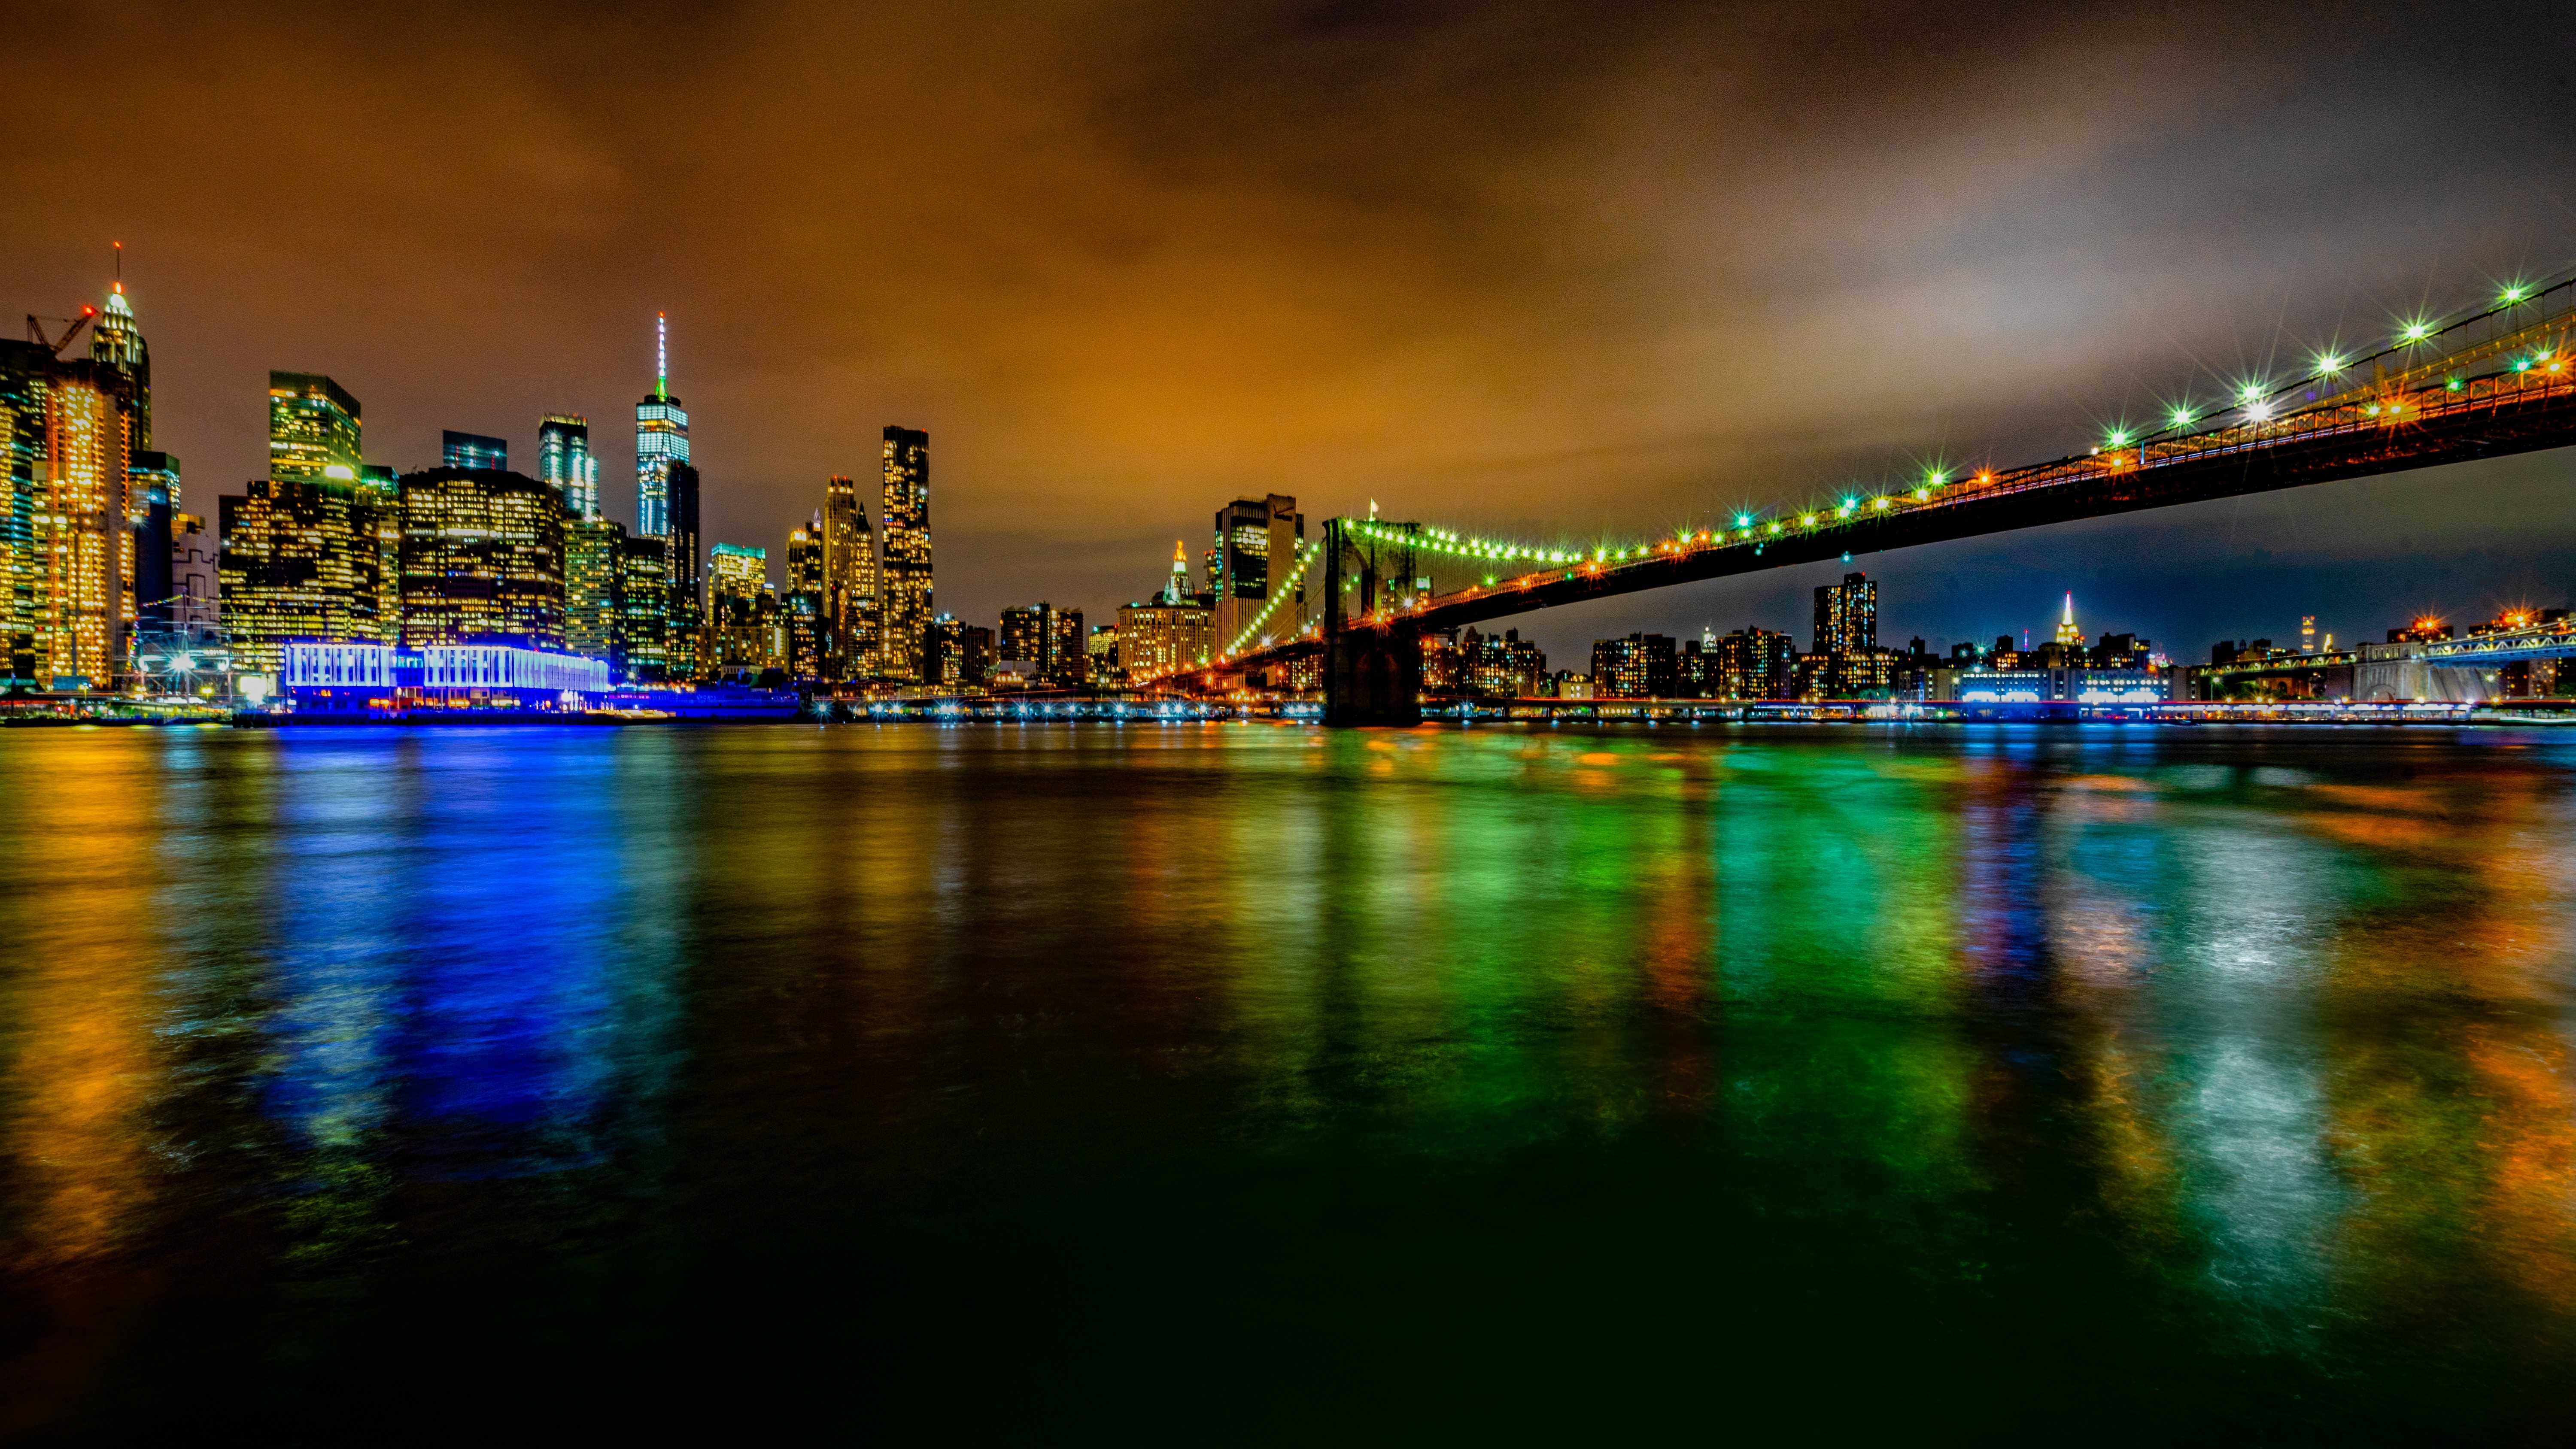 Multi-colored lights at night with buildings and a bridge